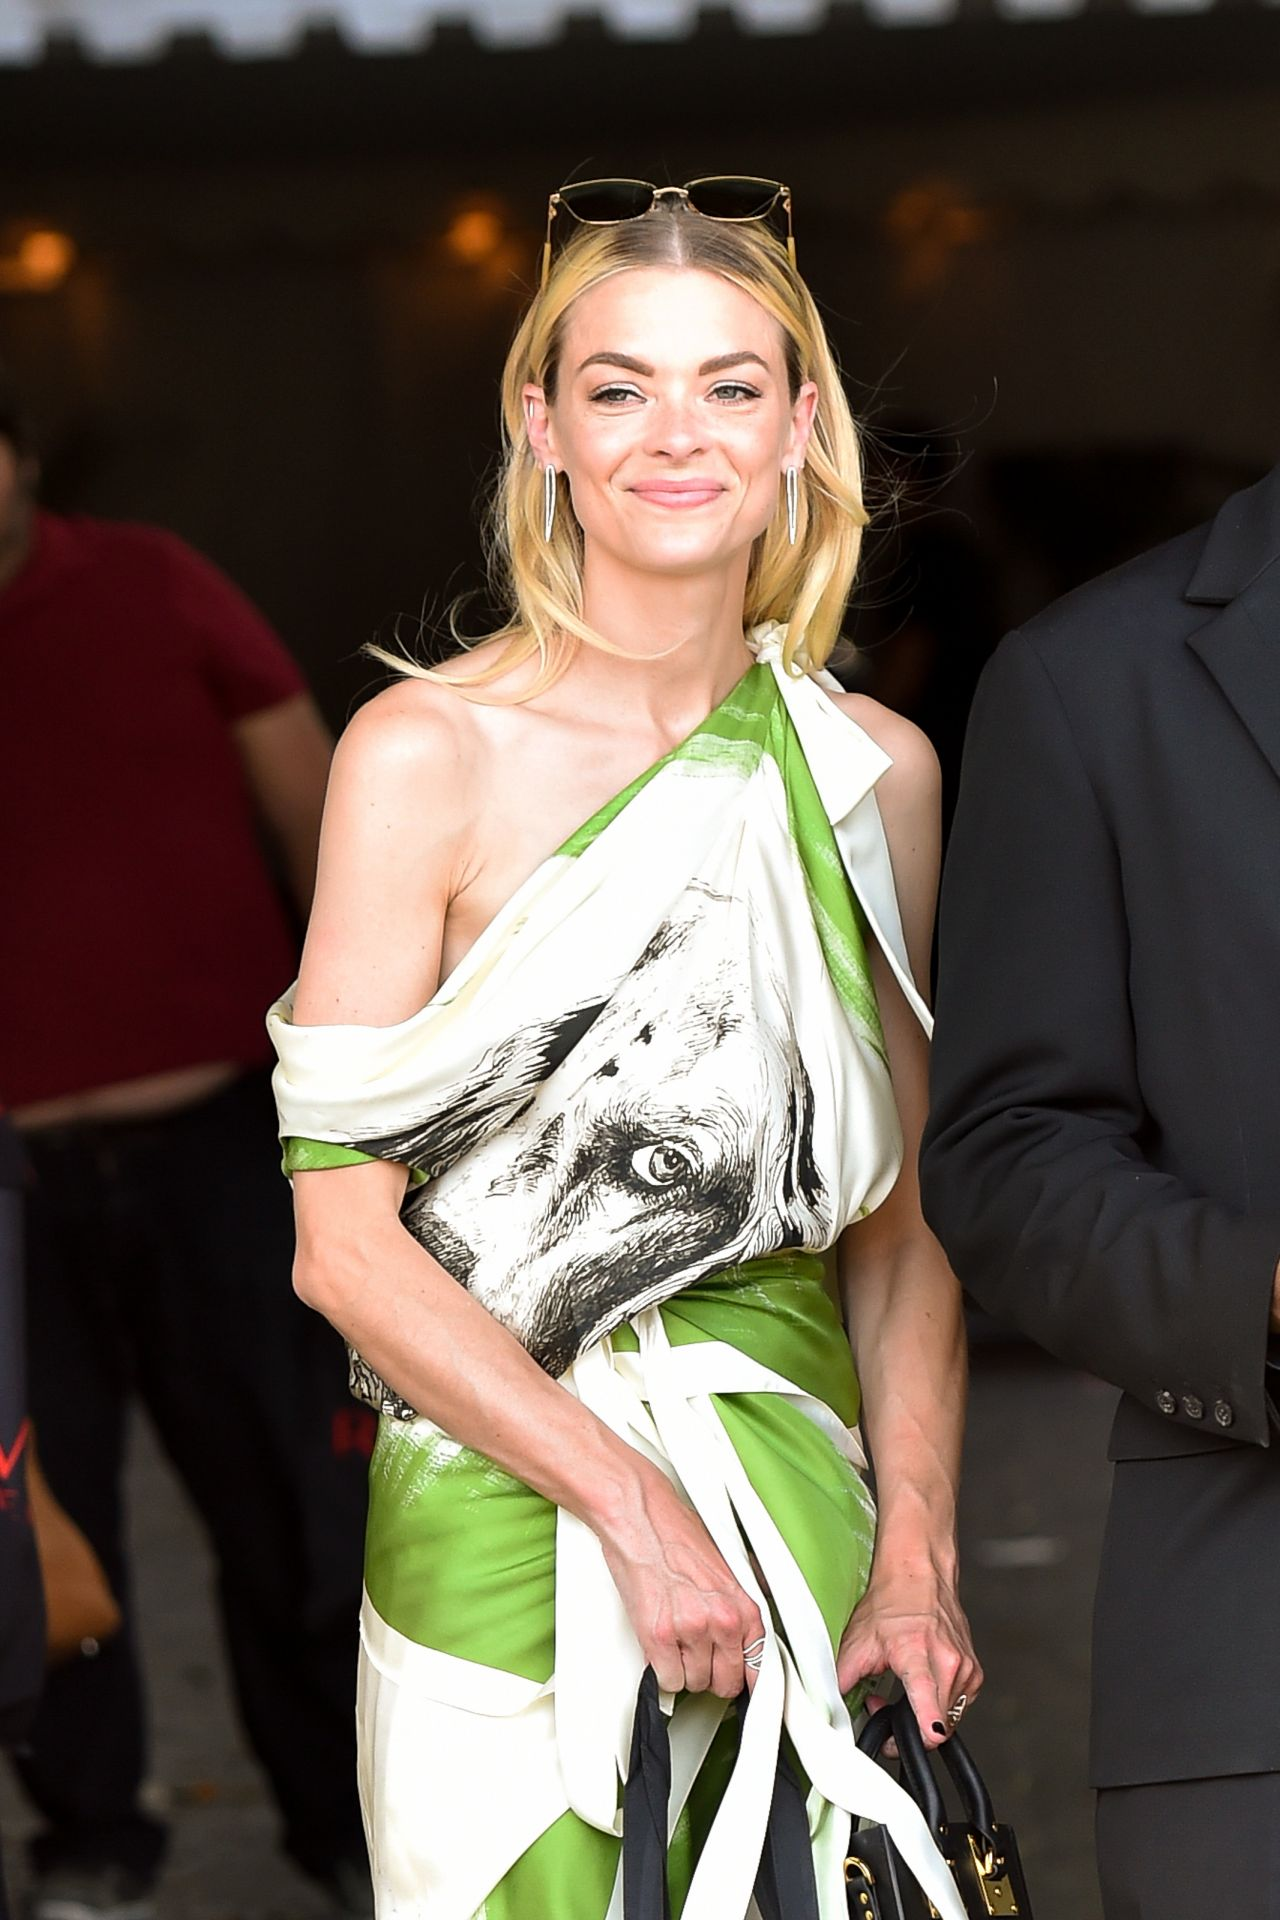 Jaime king leaving a revlon event in west hollywood 927 2016 jaime king leaving a revlon event in west hollywood 927 2016 sciox Choice Image